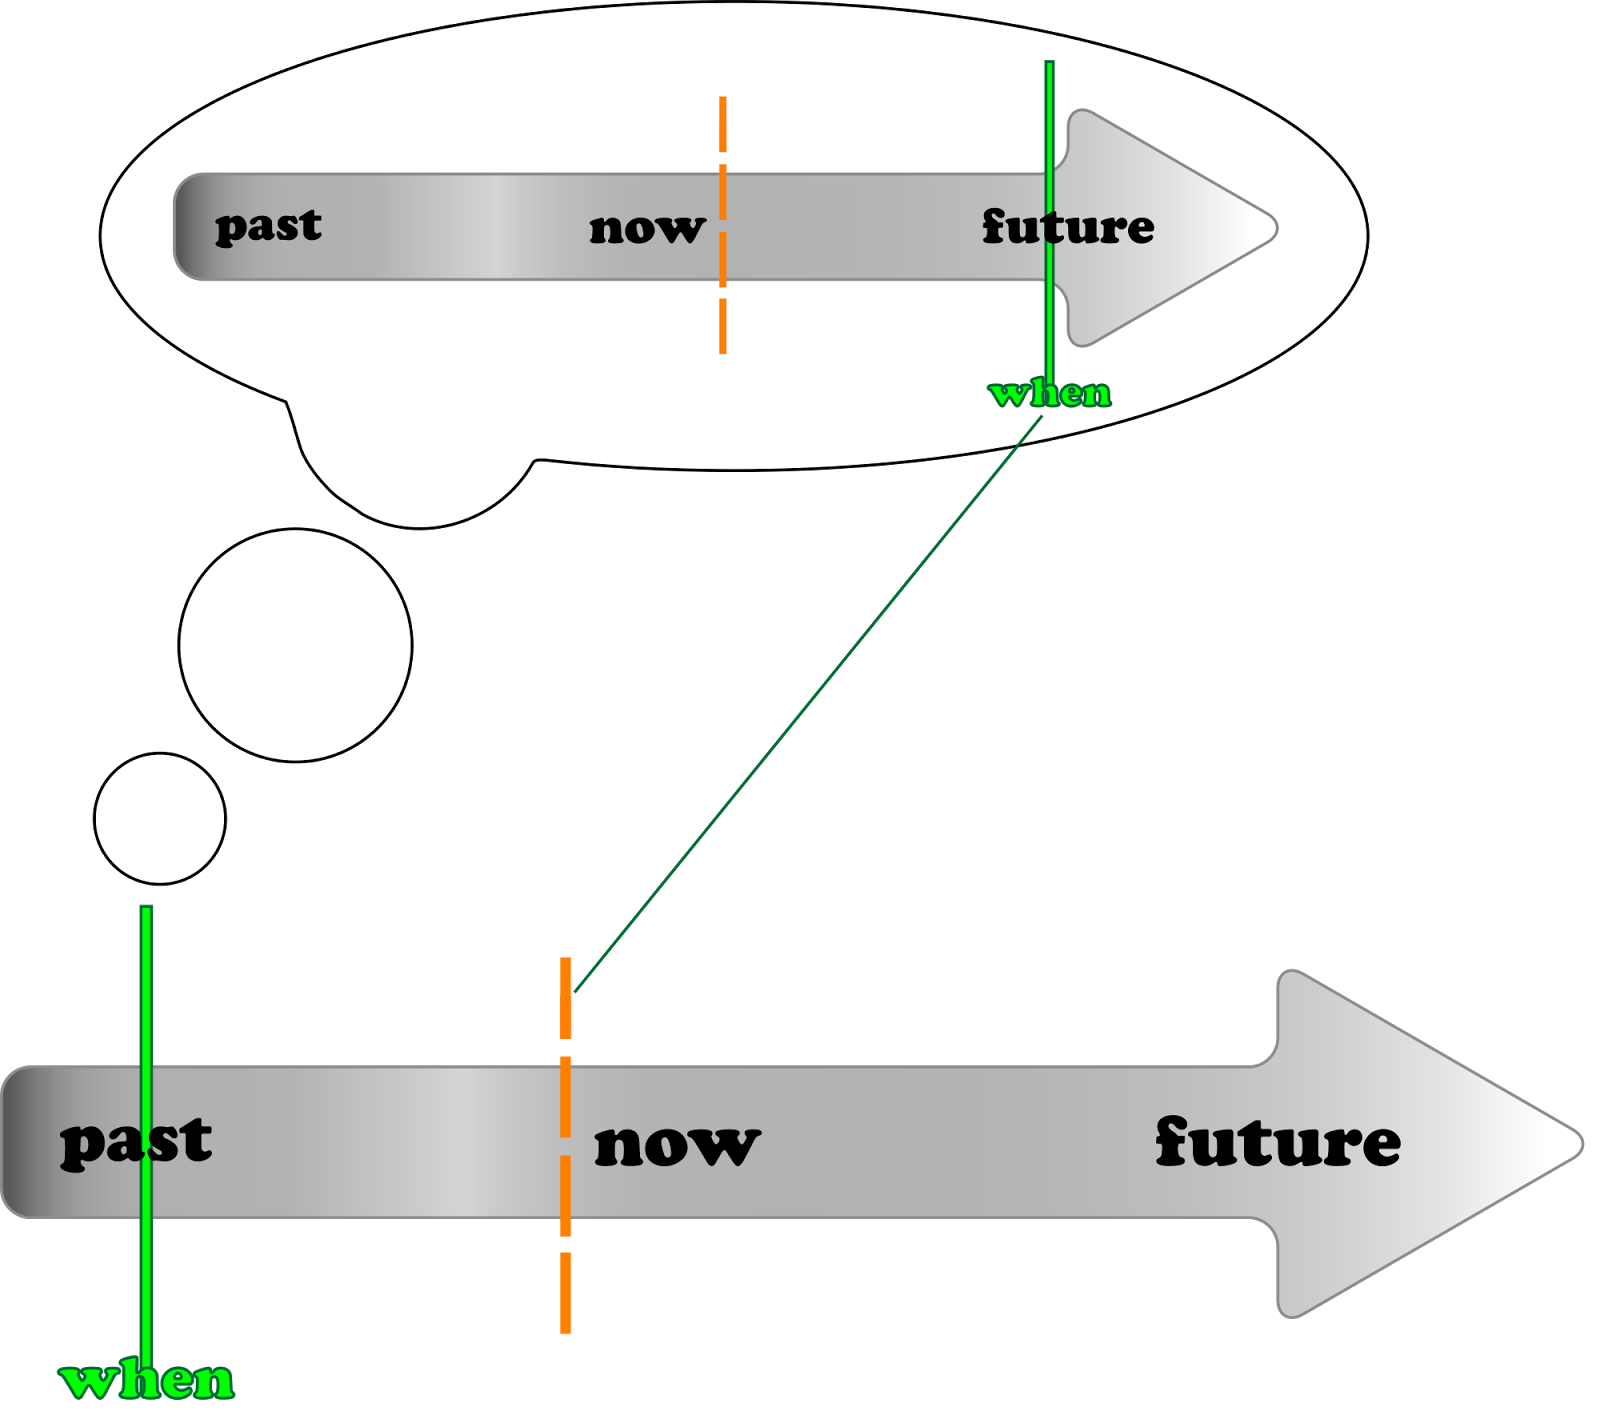 Pengertian Rumus Dan Contoh Kalimat Past Future Tense English Online